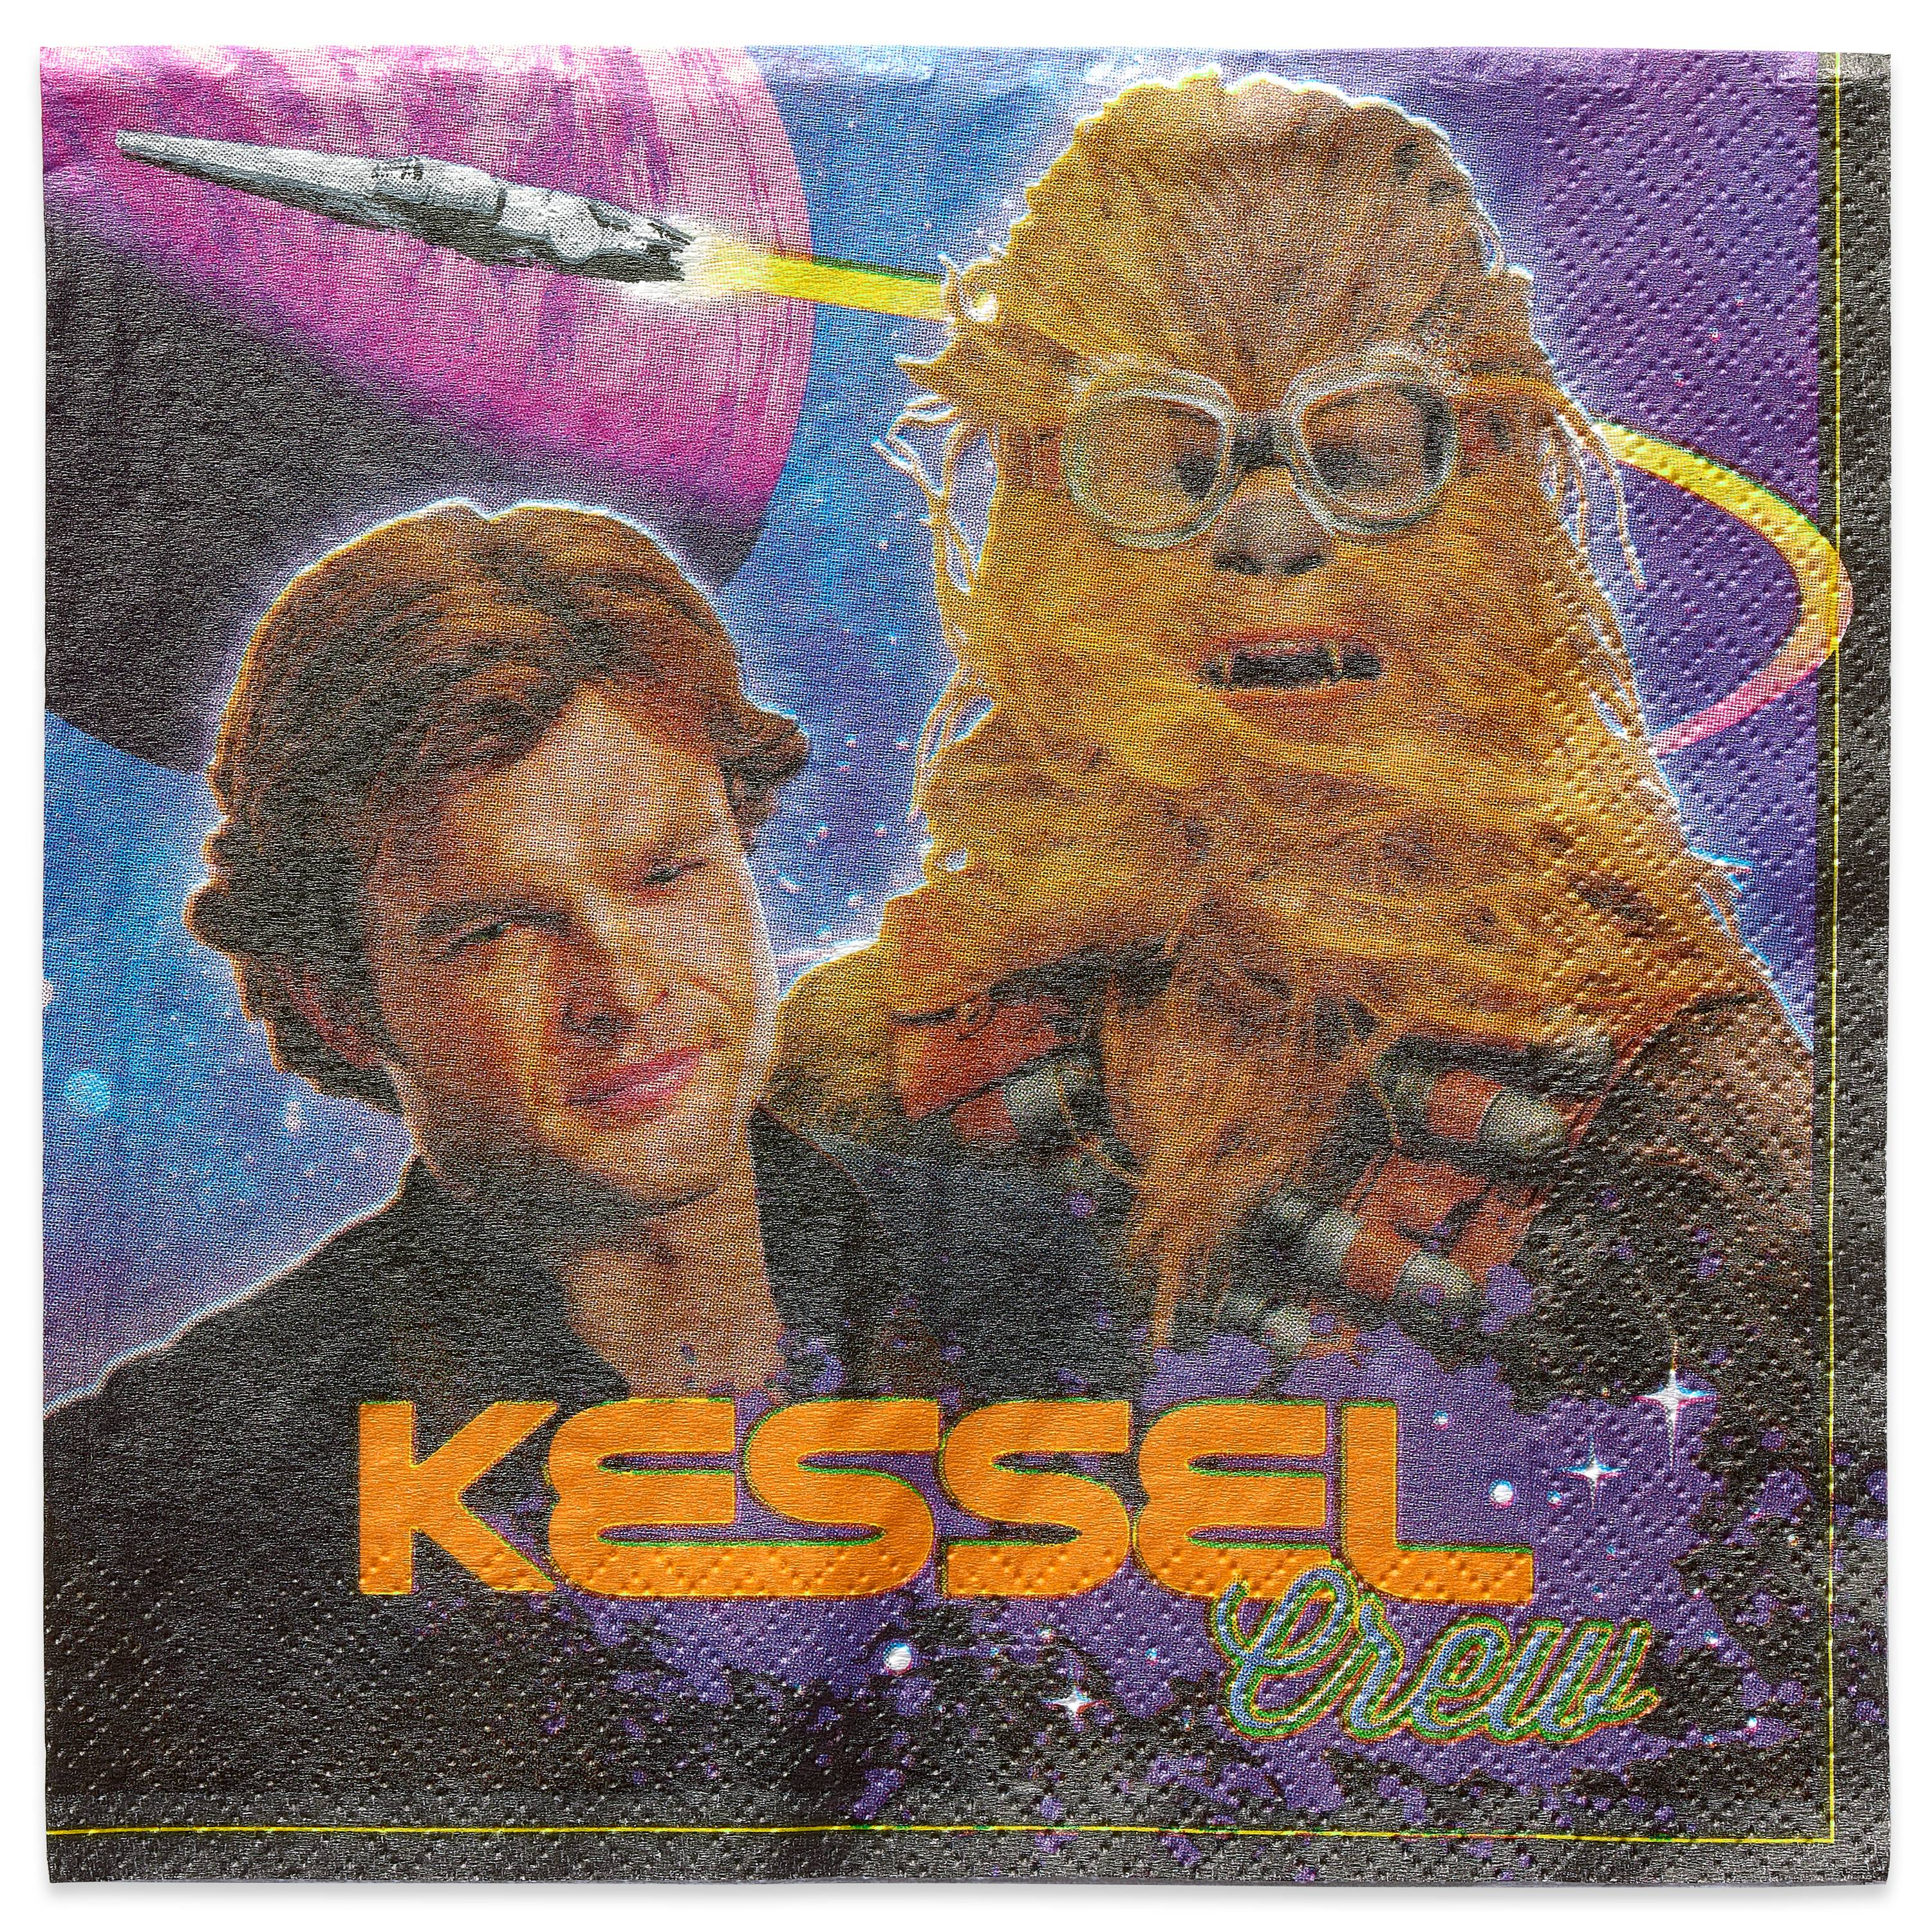 Solo: A Star Wars Story Lunch Party Napkins, 16ct